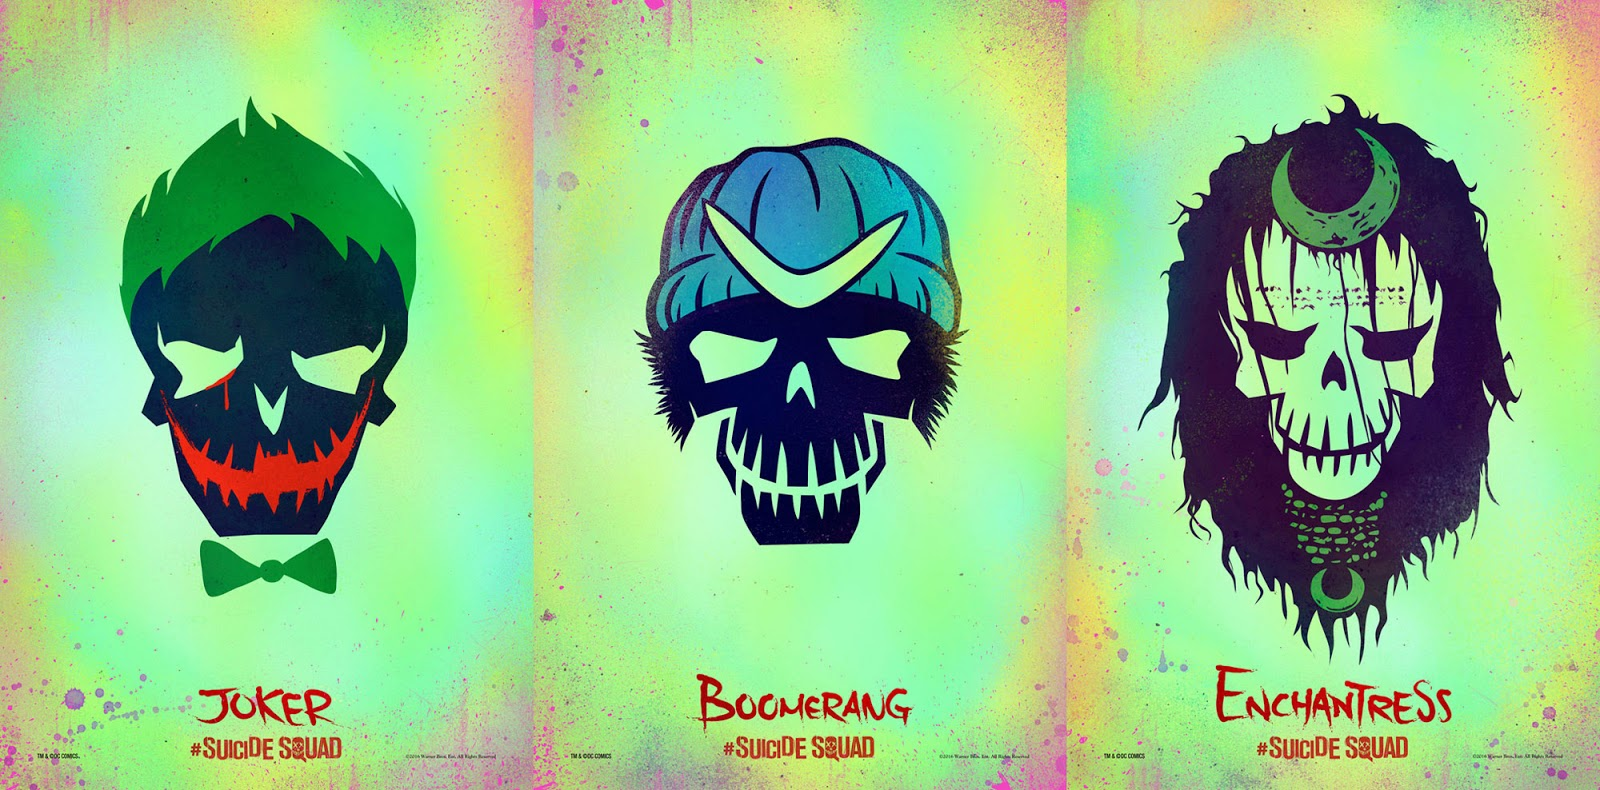 SUICIDE SQUAD Launches Character Icon Logos